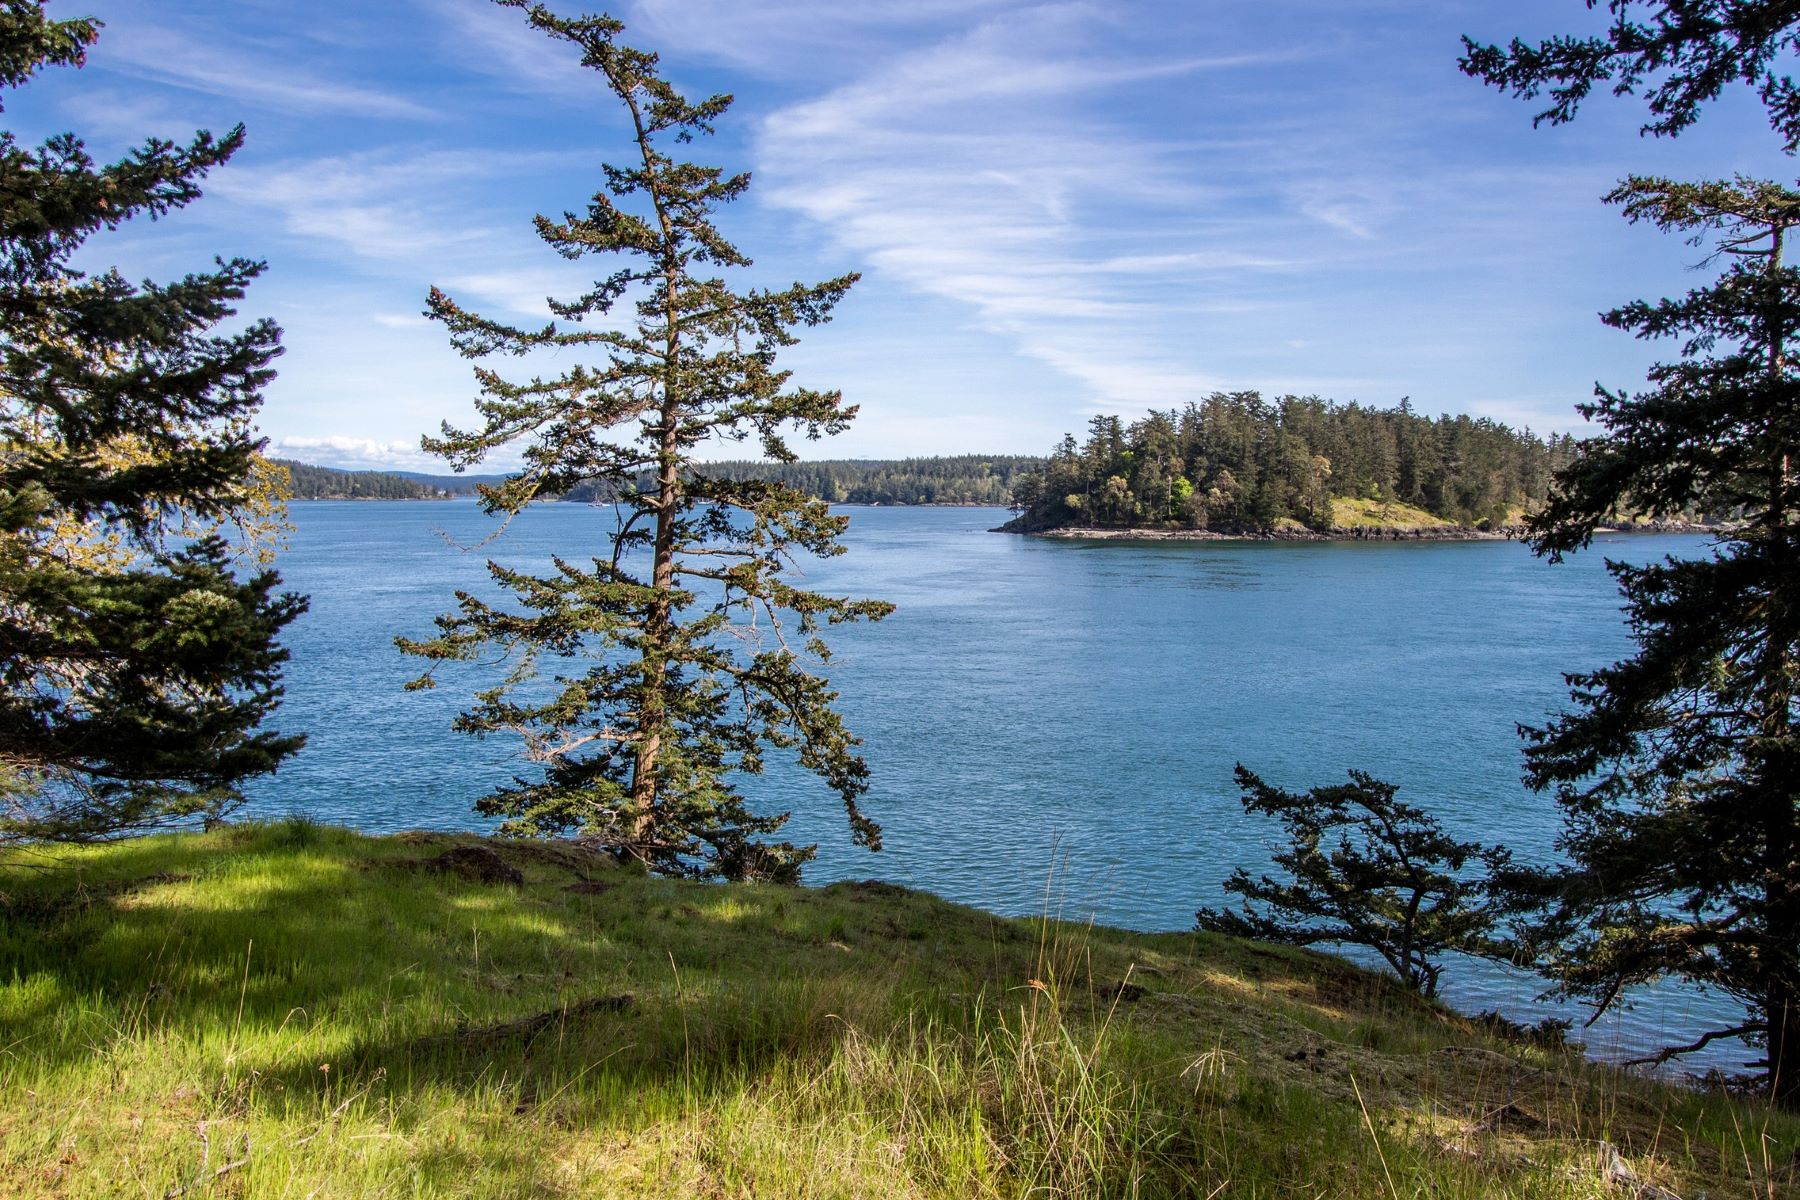 Terreno por un Venta en South Facing Waterfront Lot 1700 Spring Point Road Deer Harbor, Washington, 98243 Estados Unidos